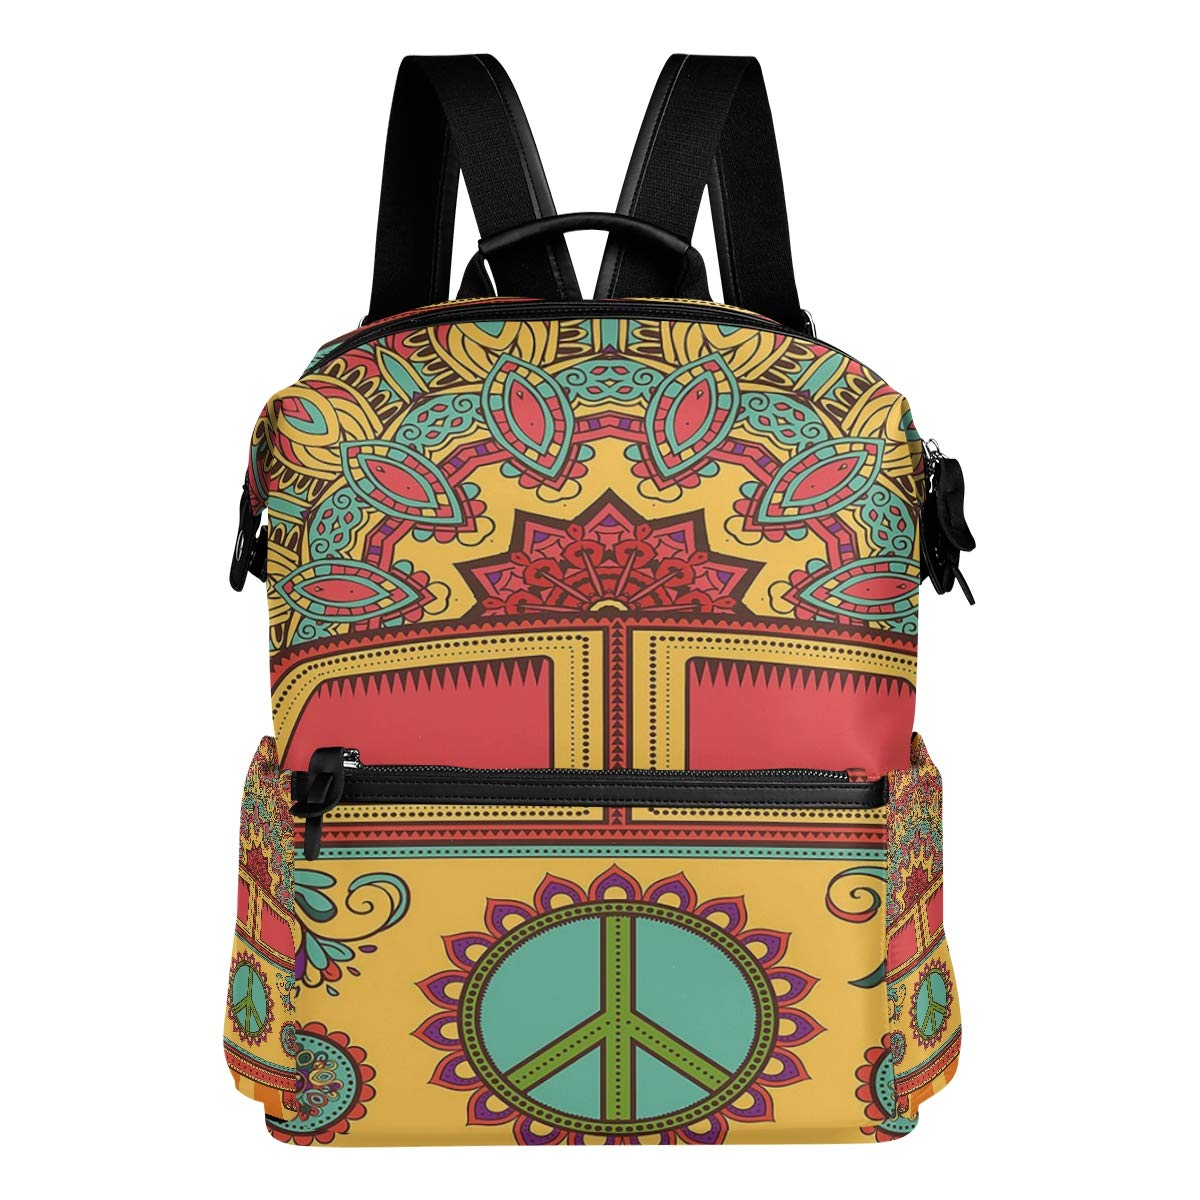 Hippie Vintage Mini Van Peace Sign Casual Backpack Lightweight Travel Daypack Bag Multi-Pocket Student School Bag